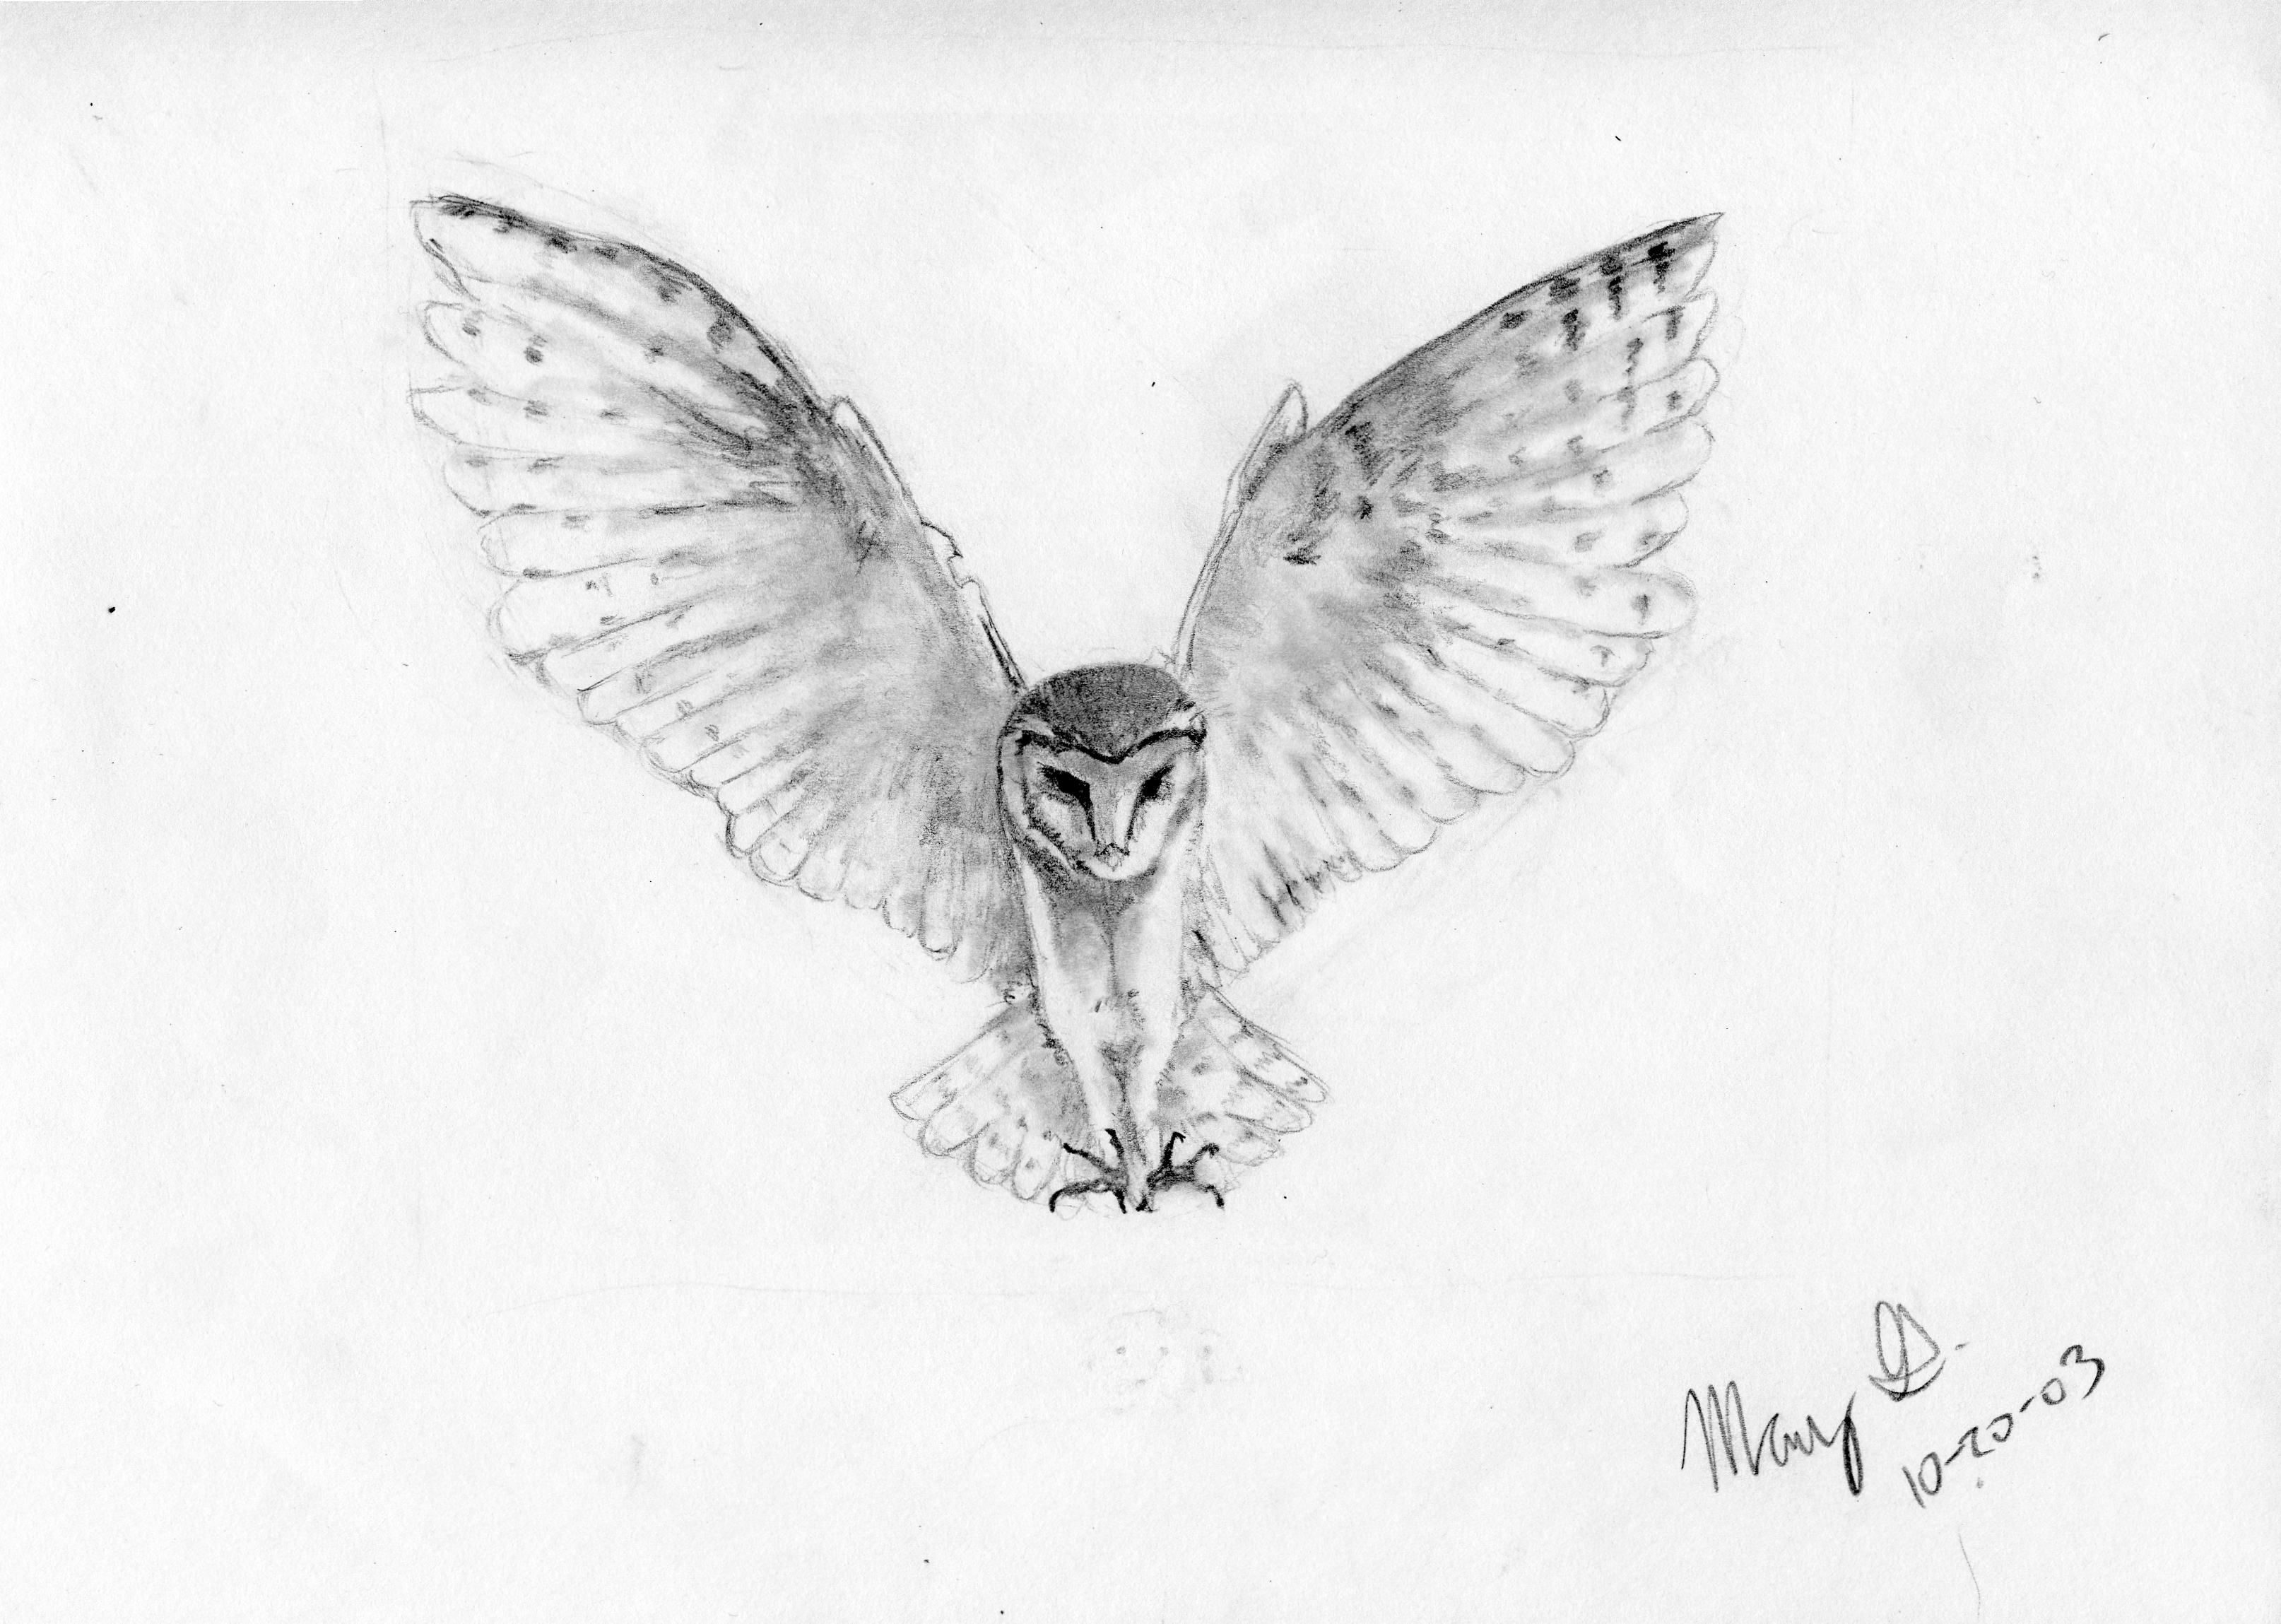 Flying owl drawings black and white - photo#26